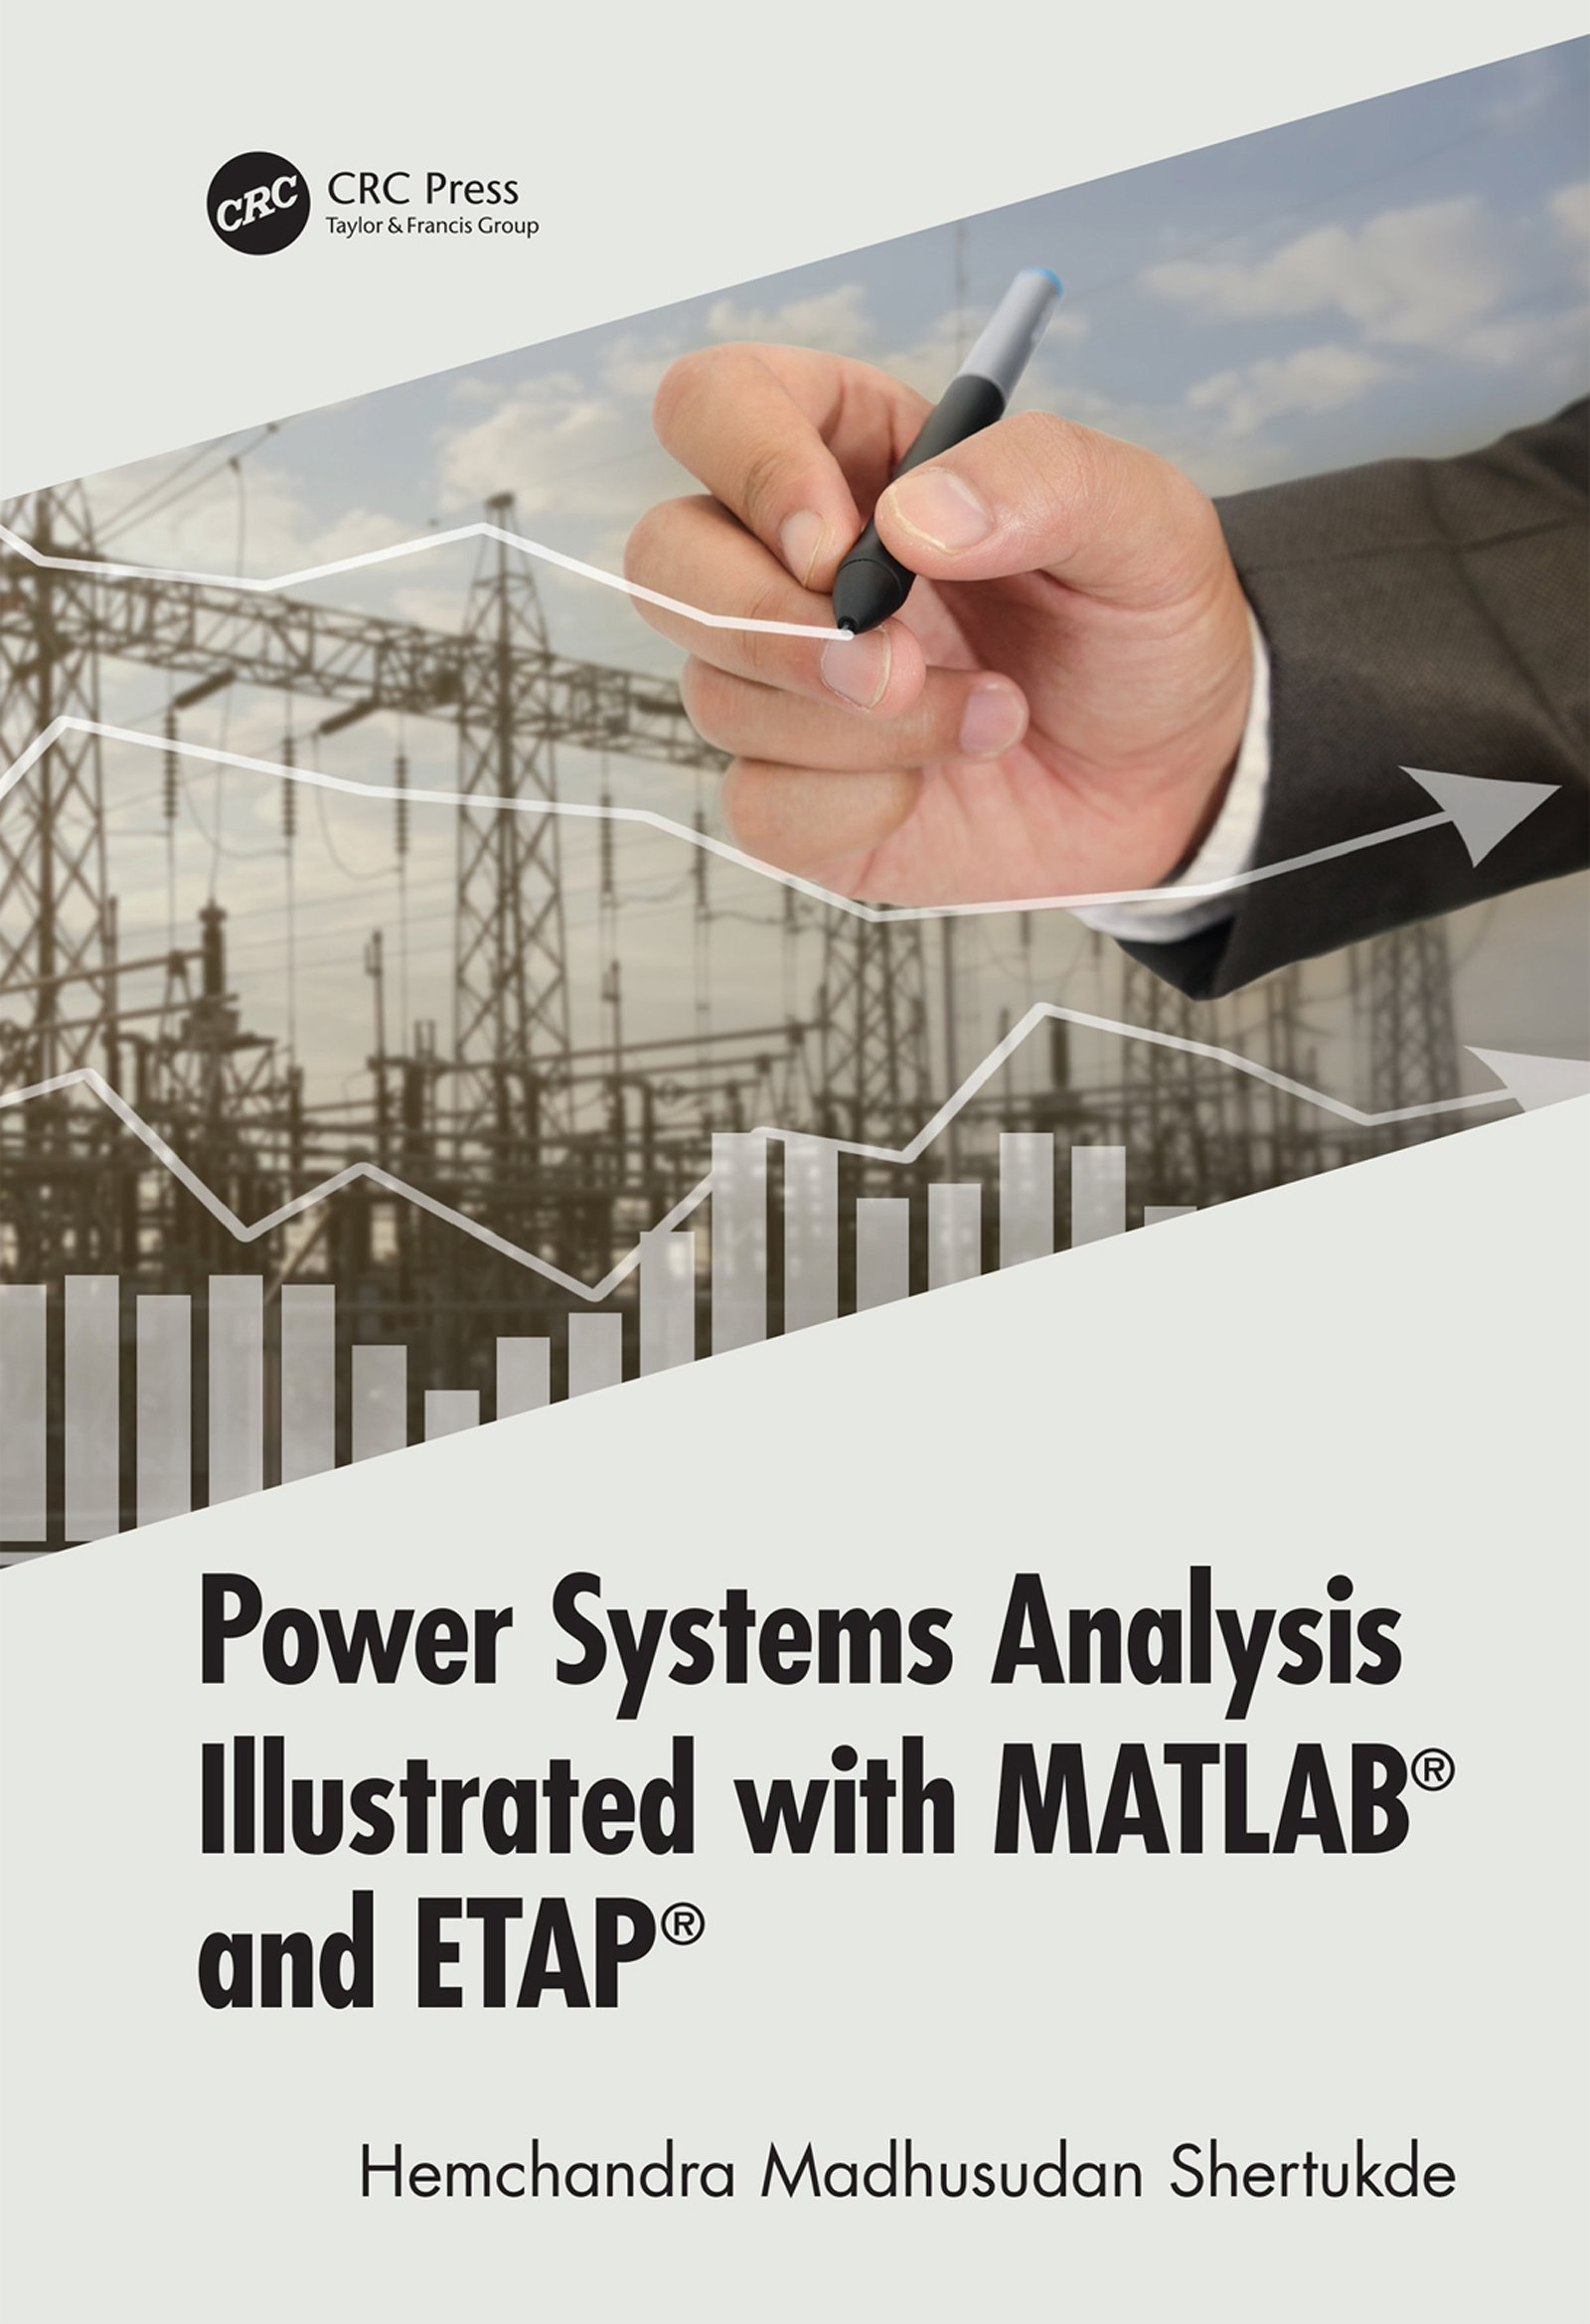 Power Systems Analysis Illustrated with MATLAB and ETAP